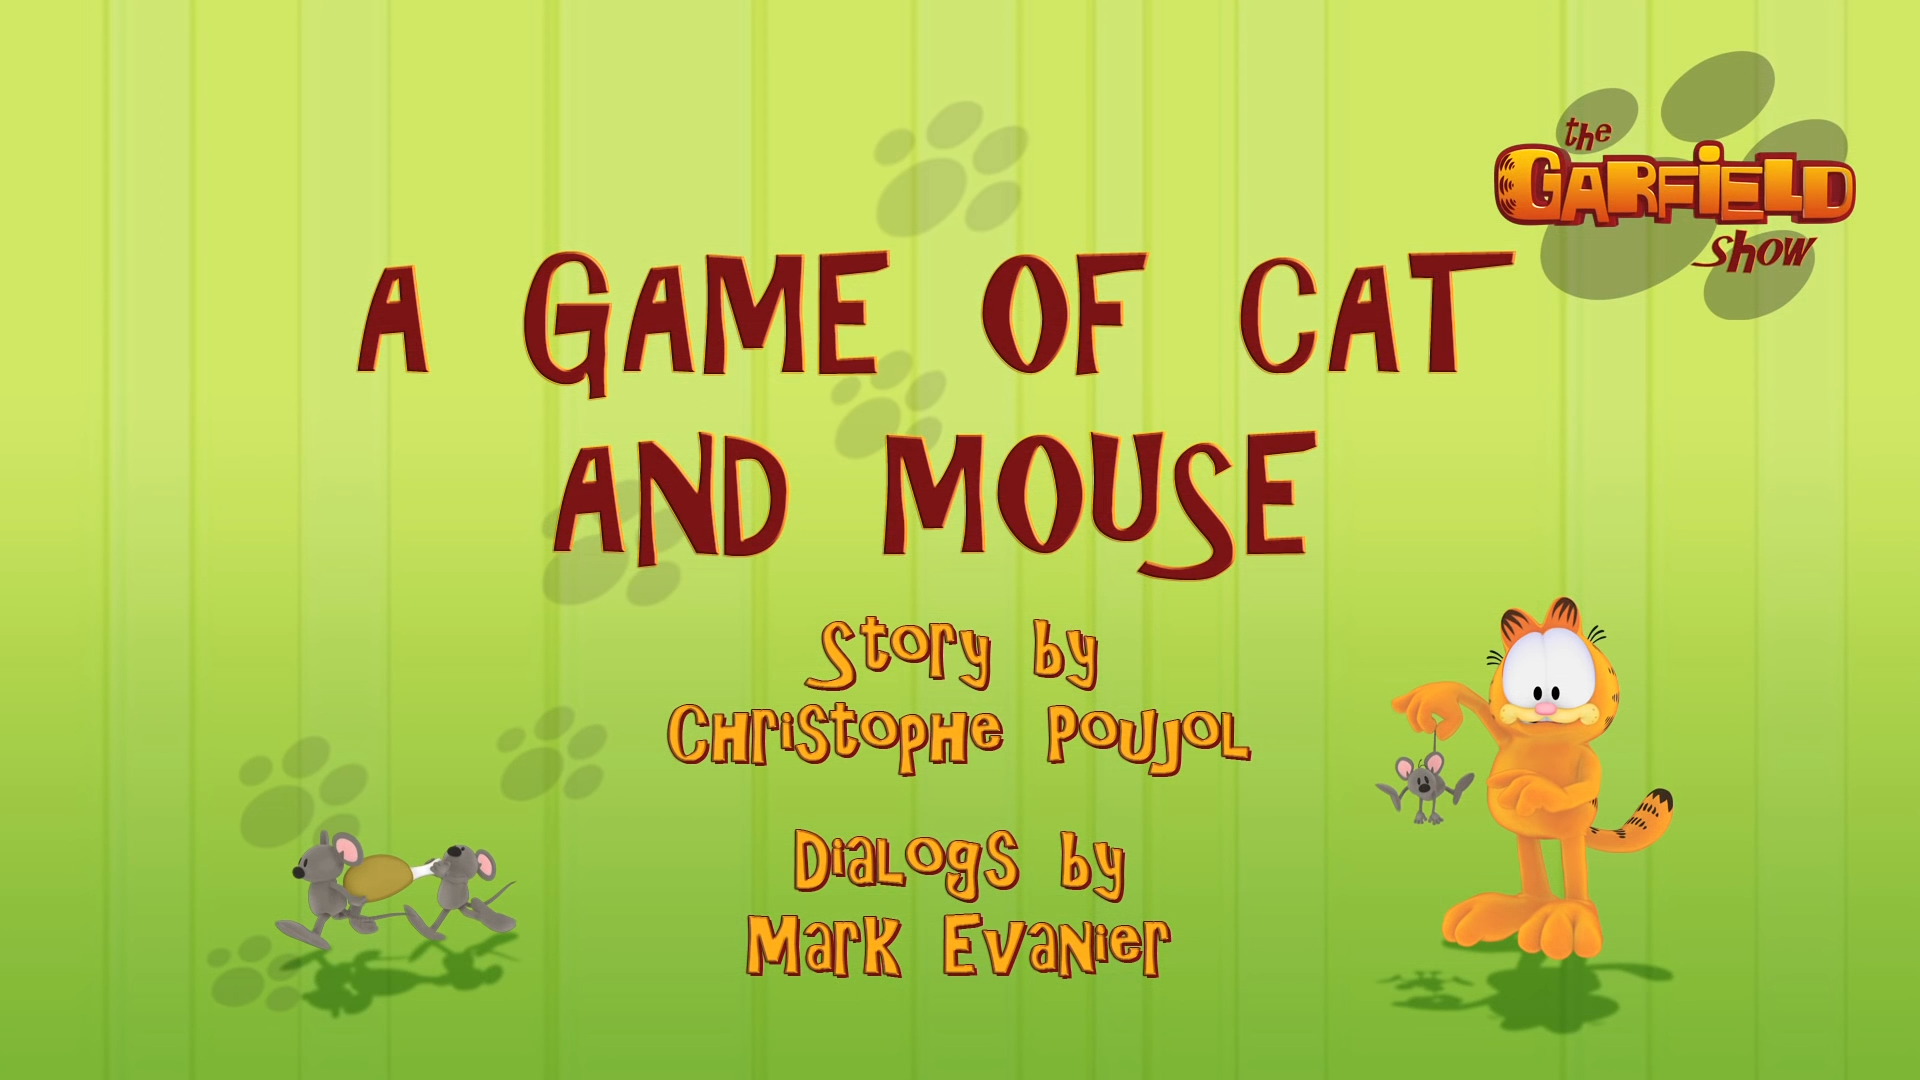 Cat and mouse game